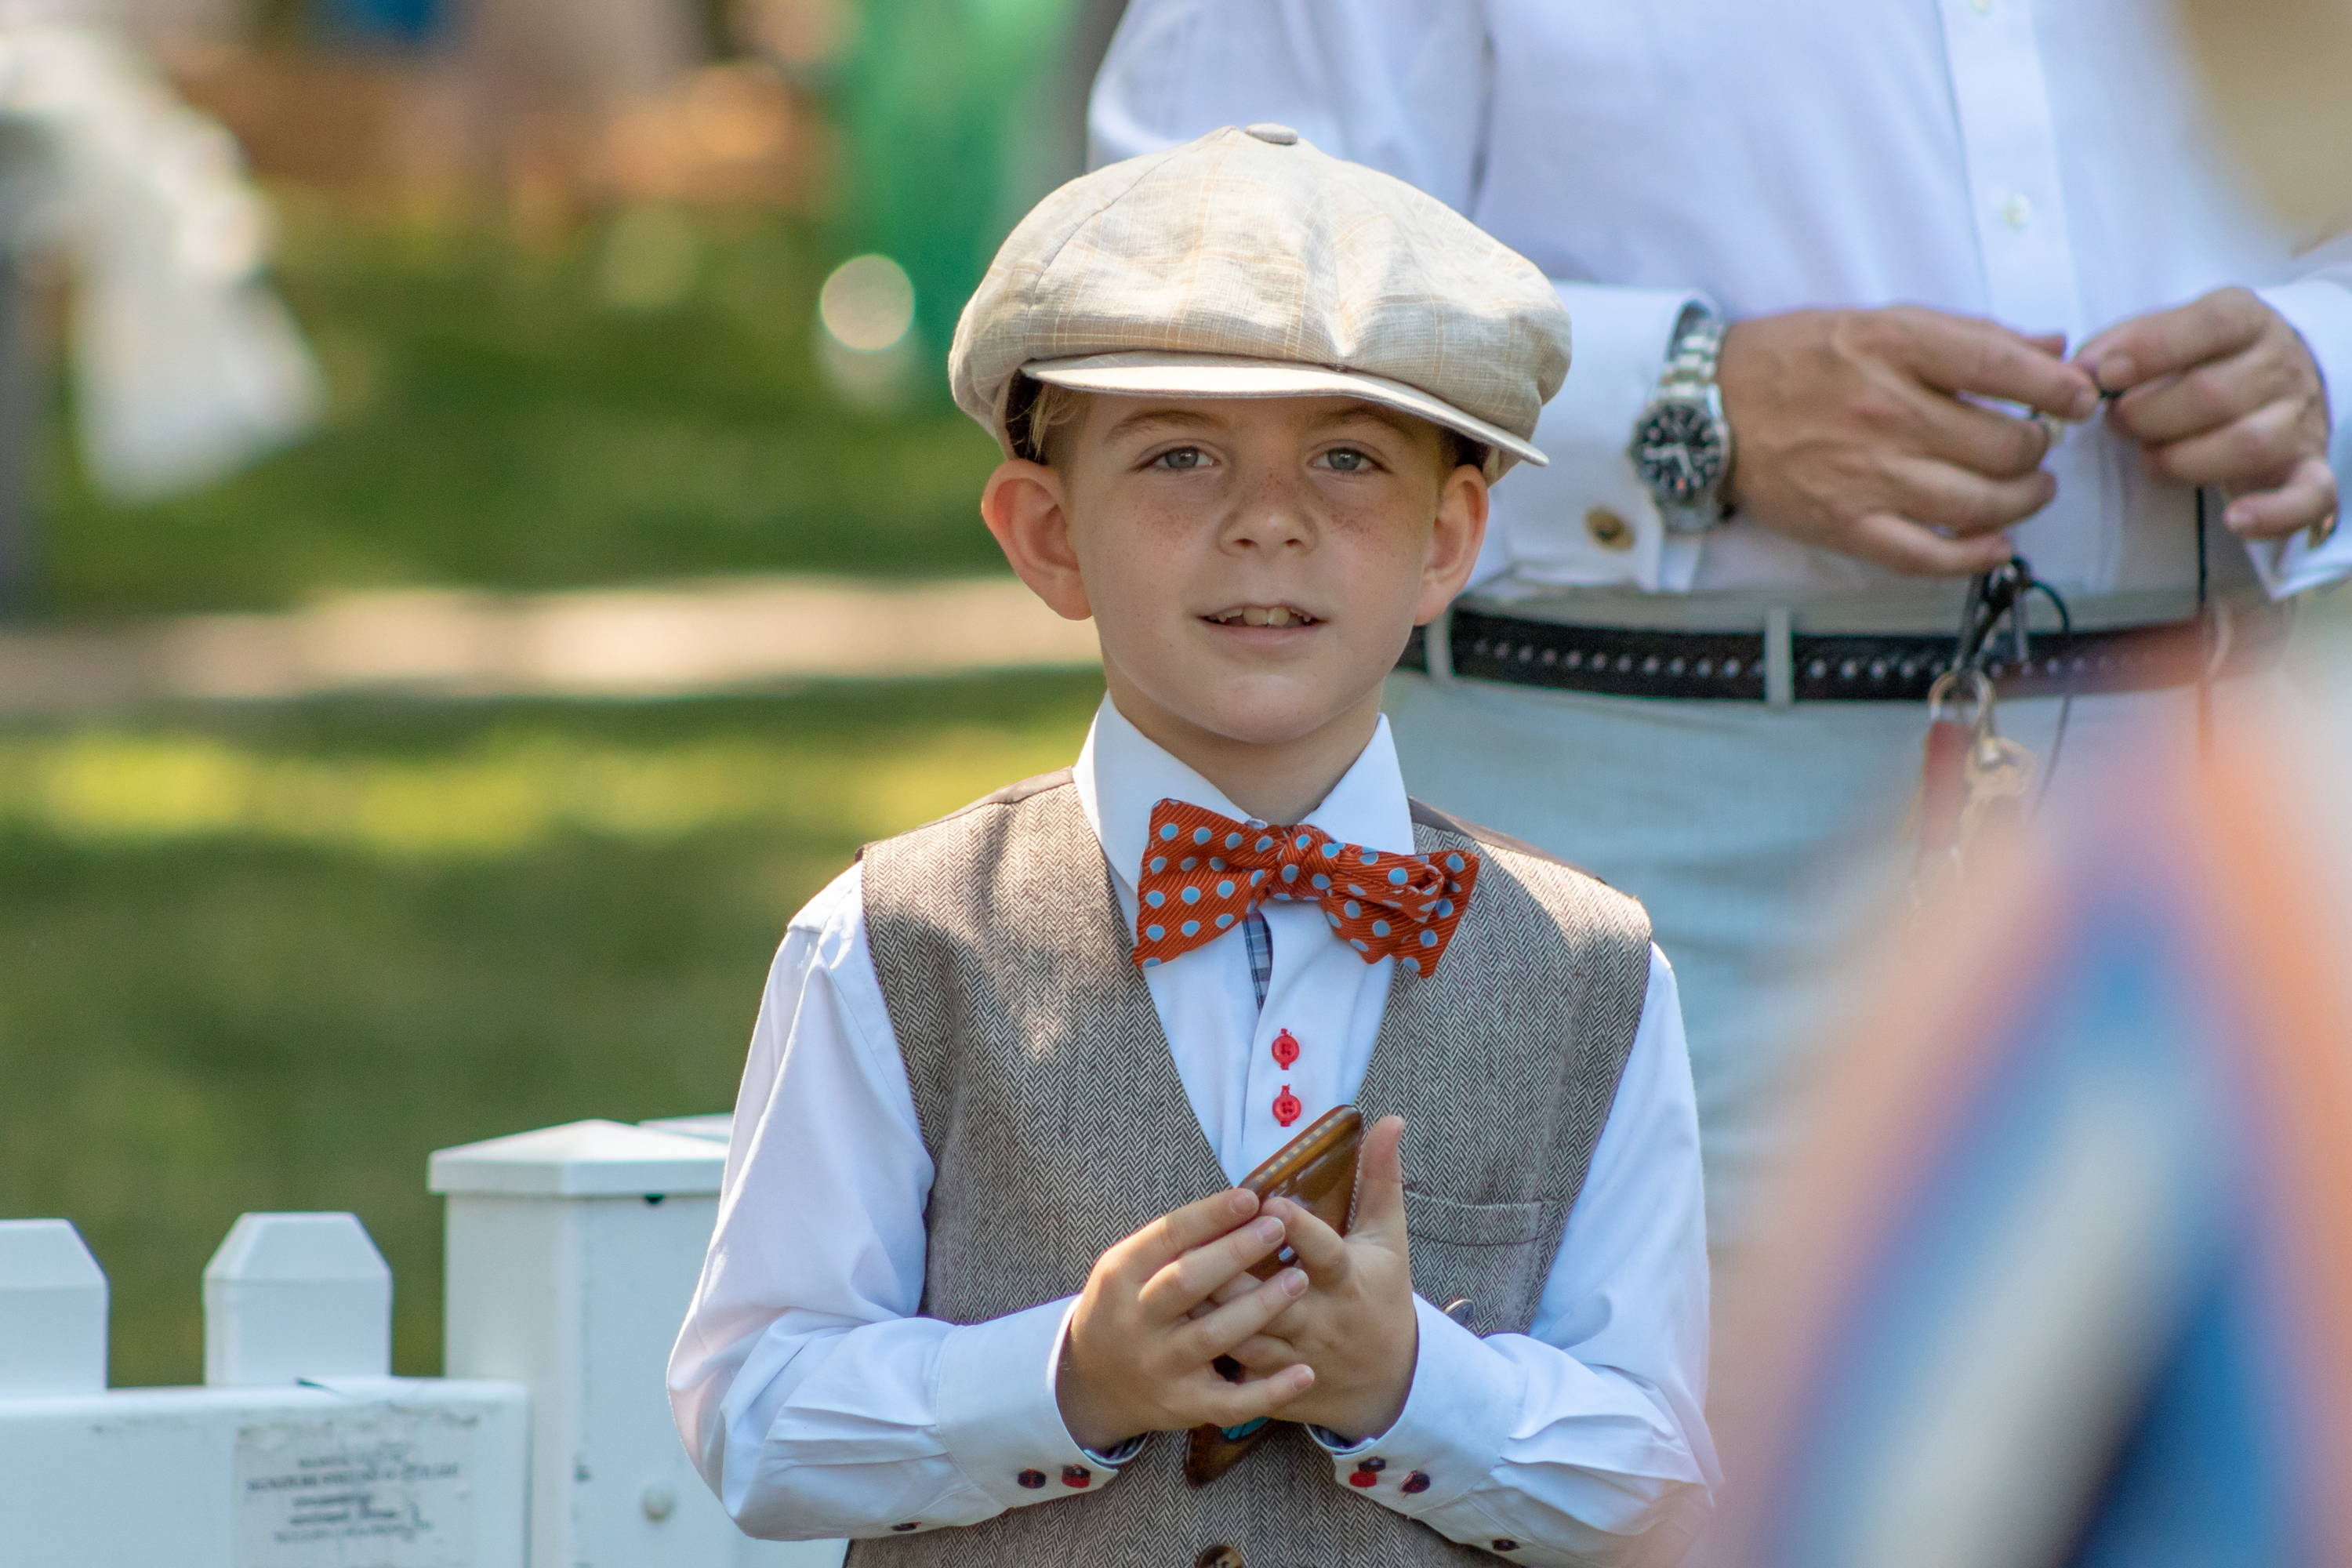 Kids Parade at the 2018 Jazz Age Lawn Party